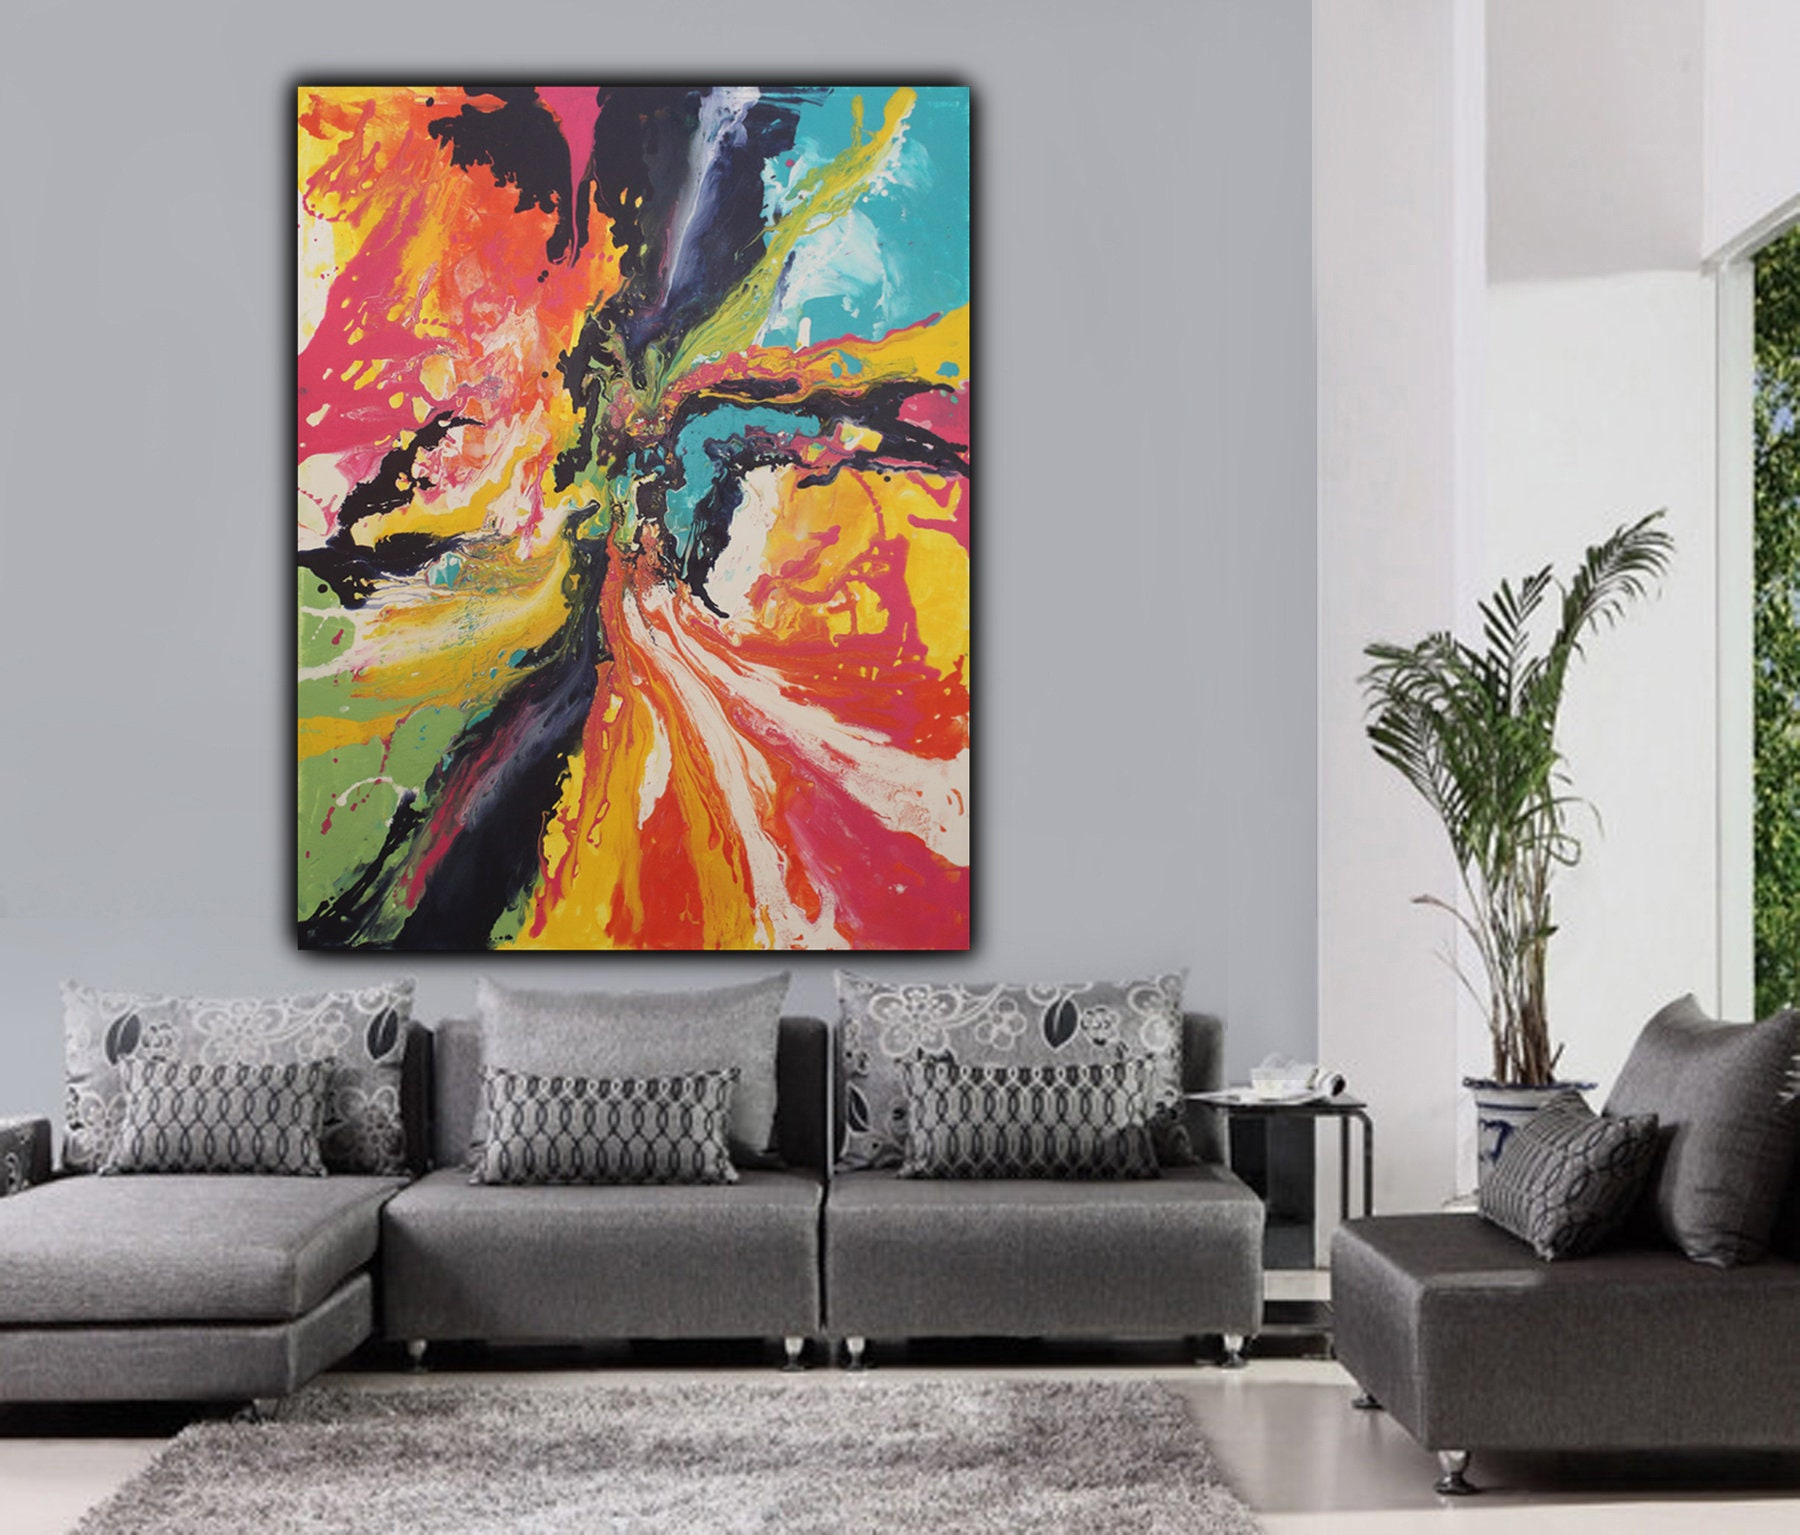 Original Large Modern Fluid Liquid Abstract Painting On Canvas Wall